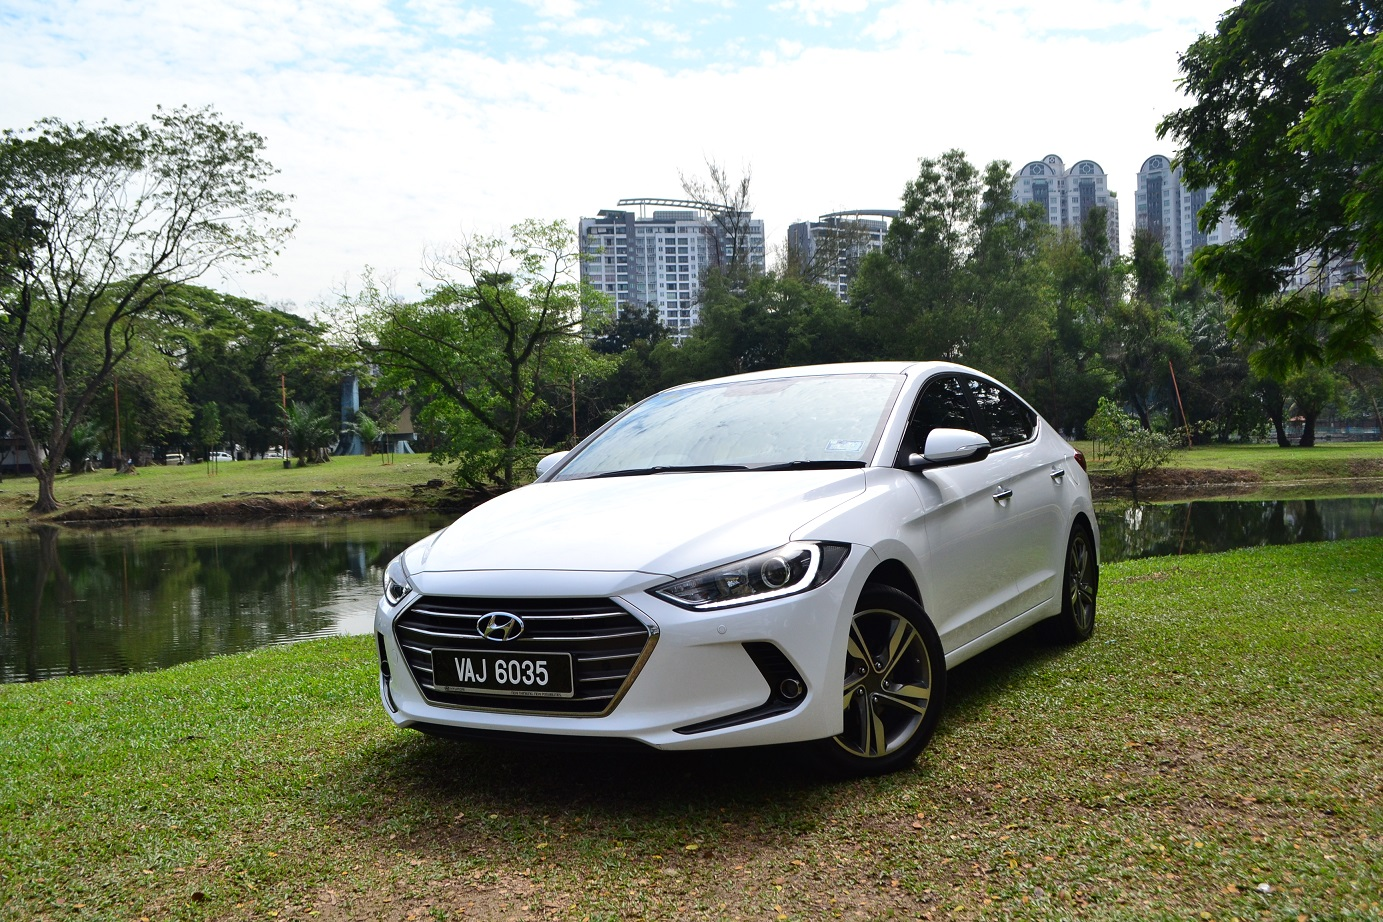 Hyundai Elantra: Higher speed motoring